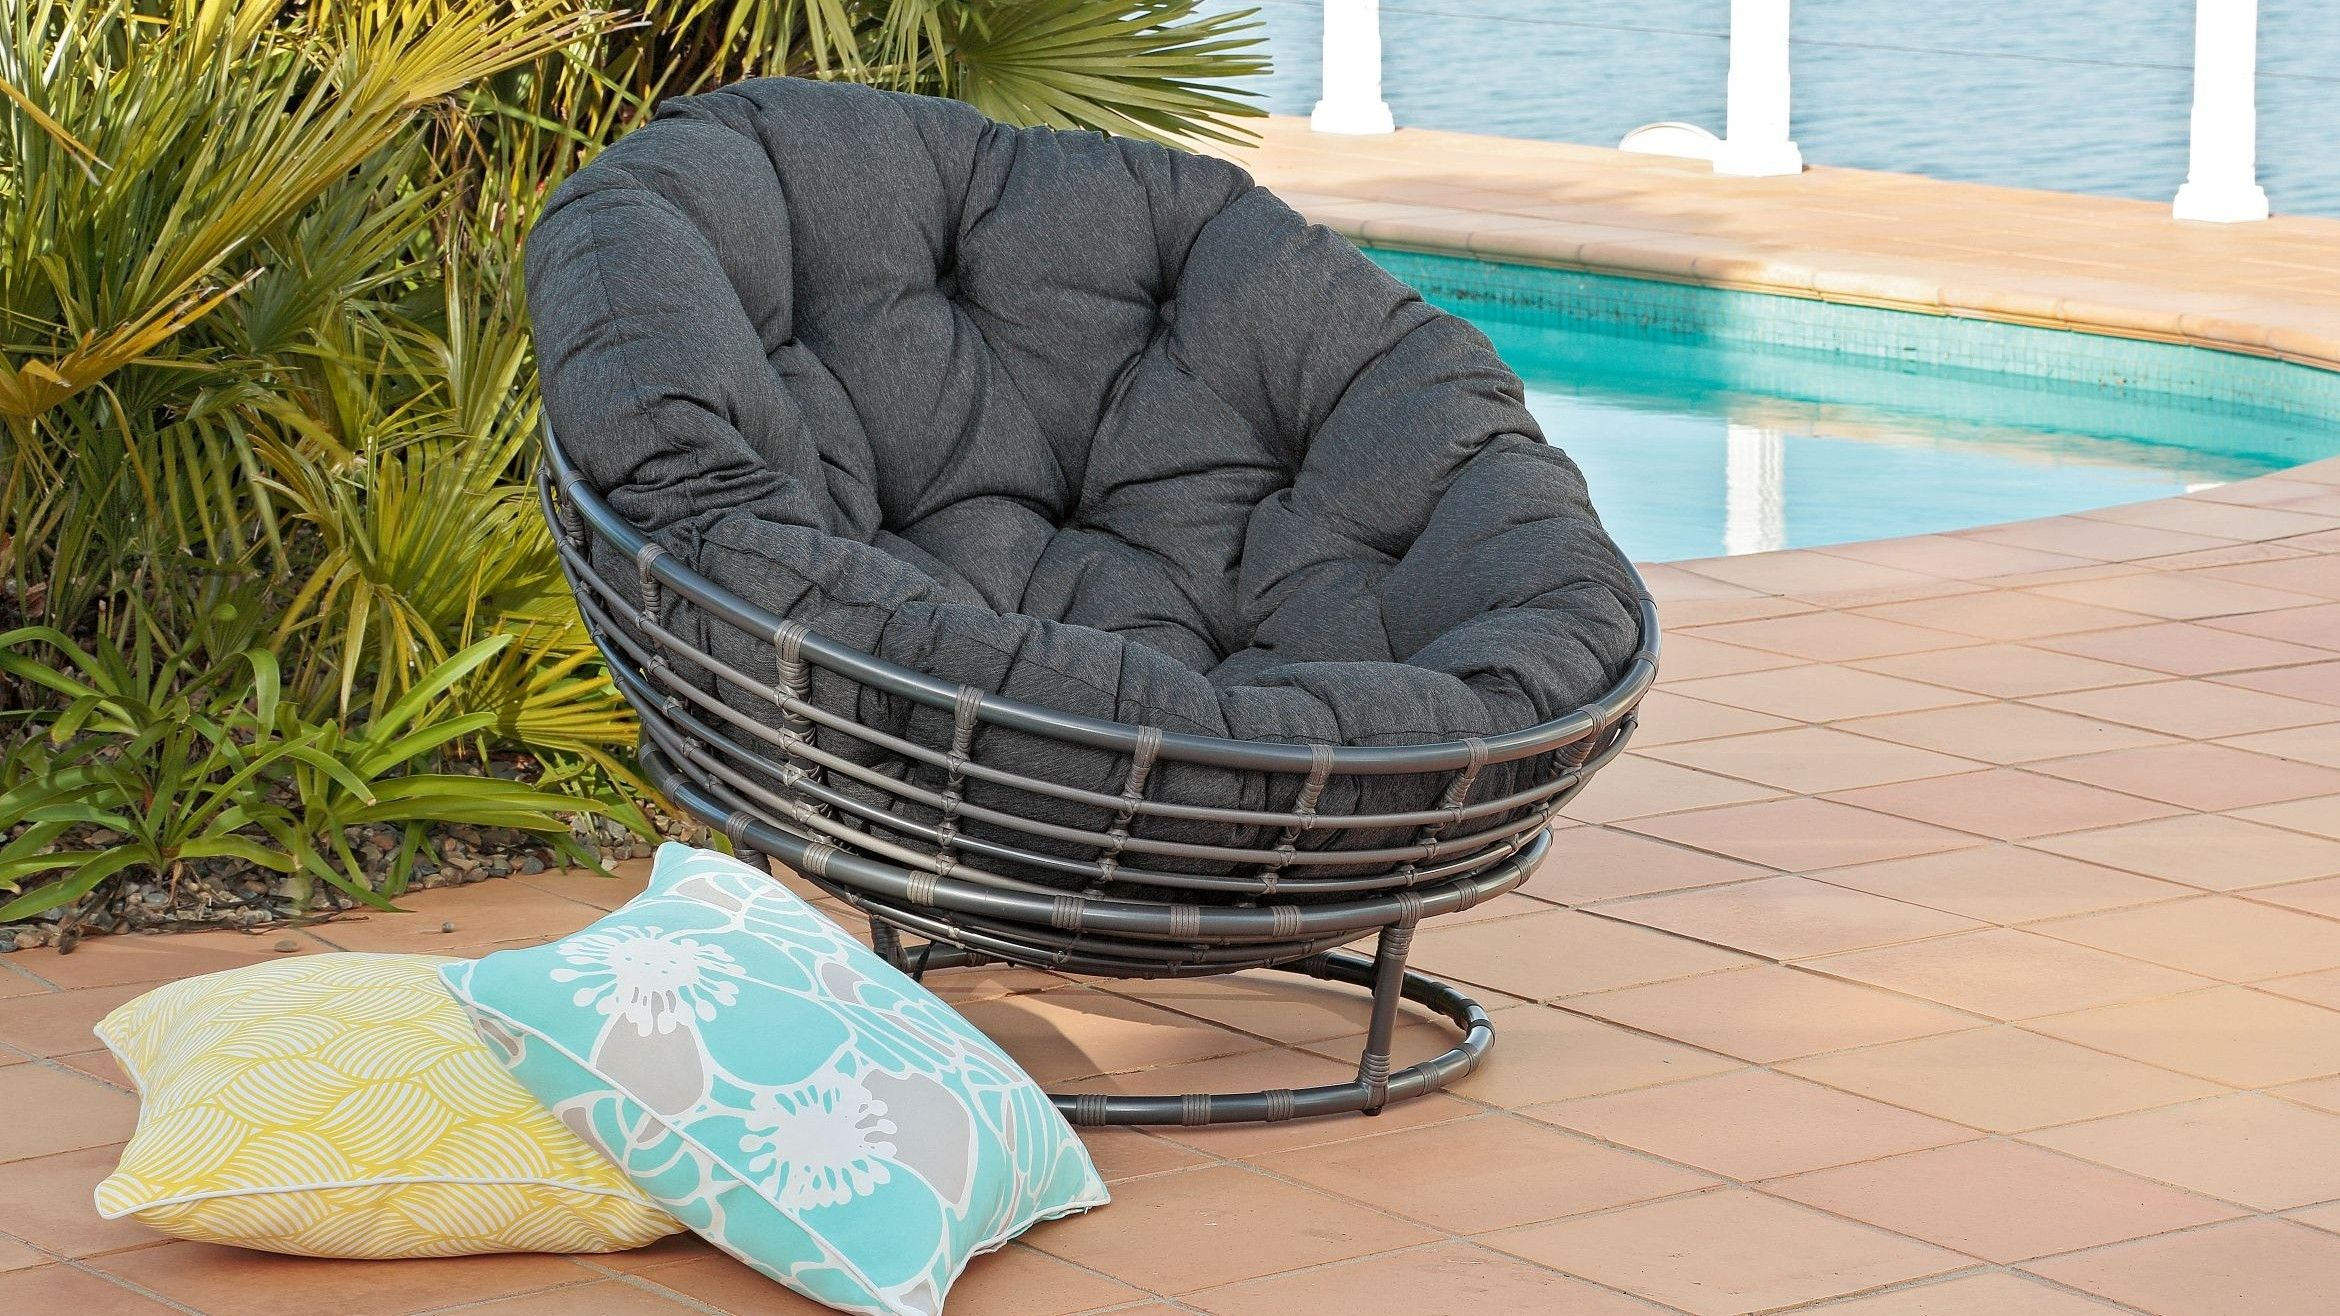 Pin by Tracy Holliday on For the Home | Pinterest | Papasan chair ...